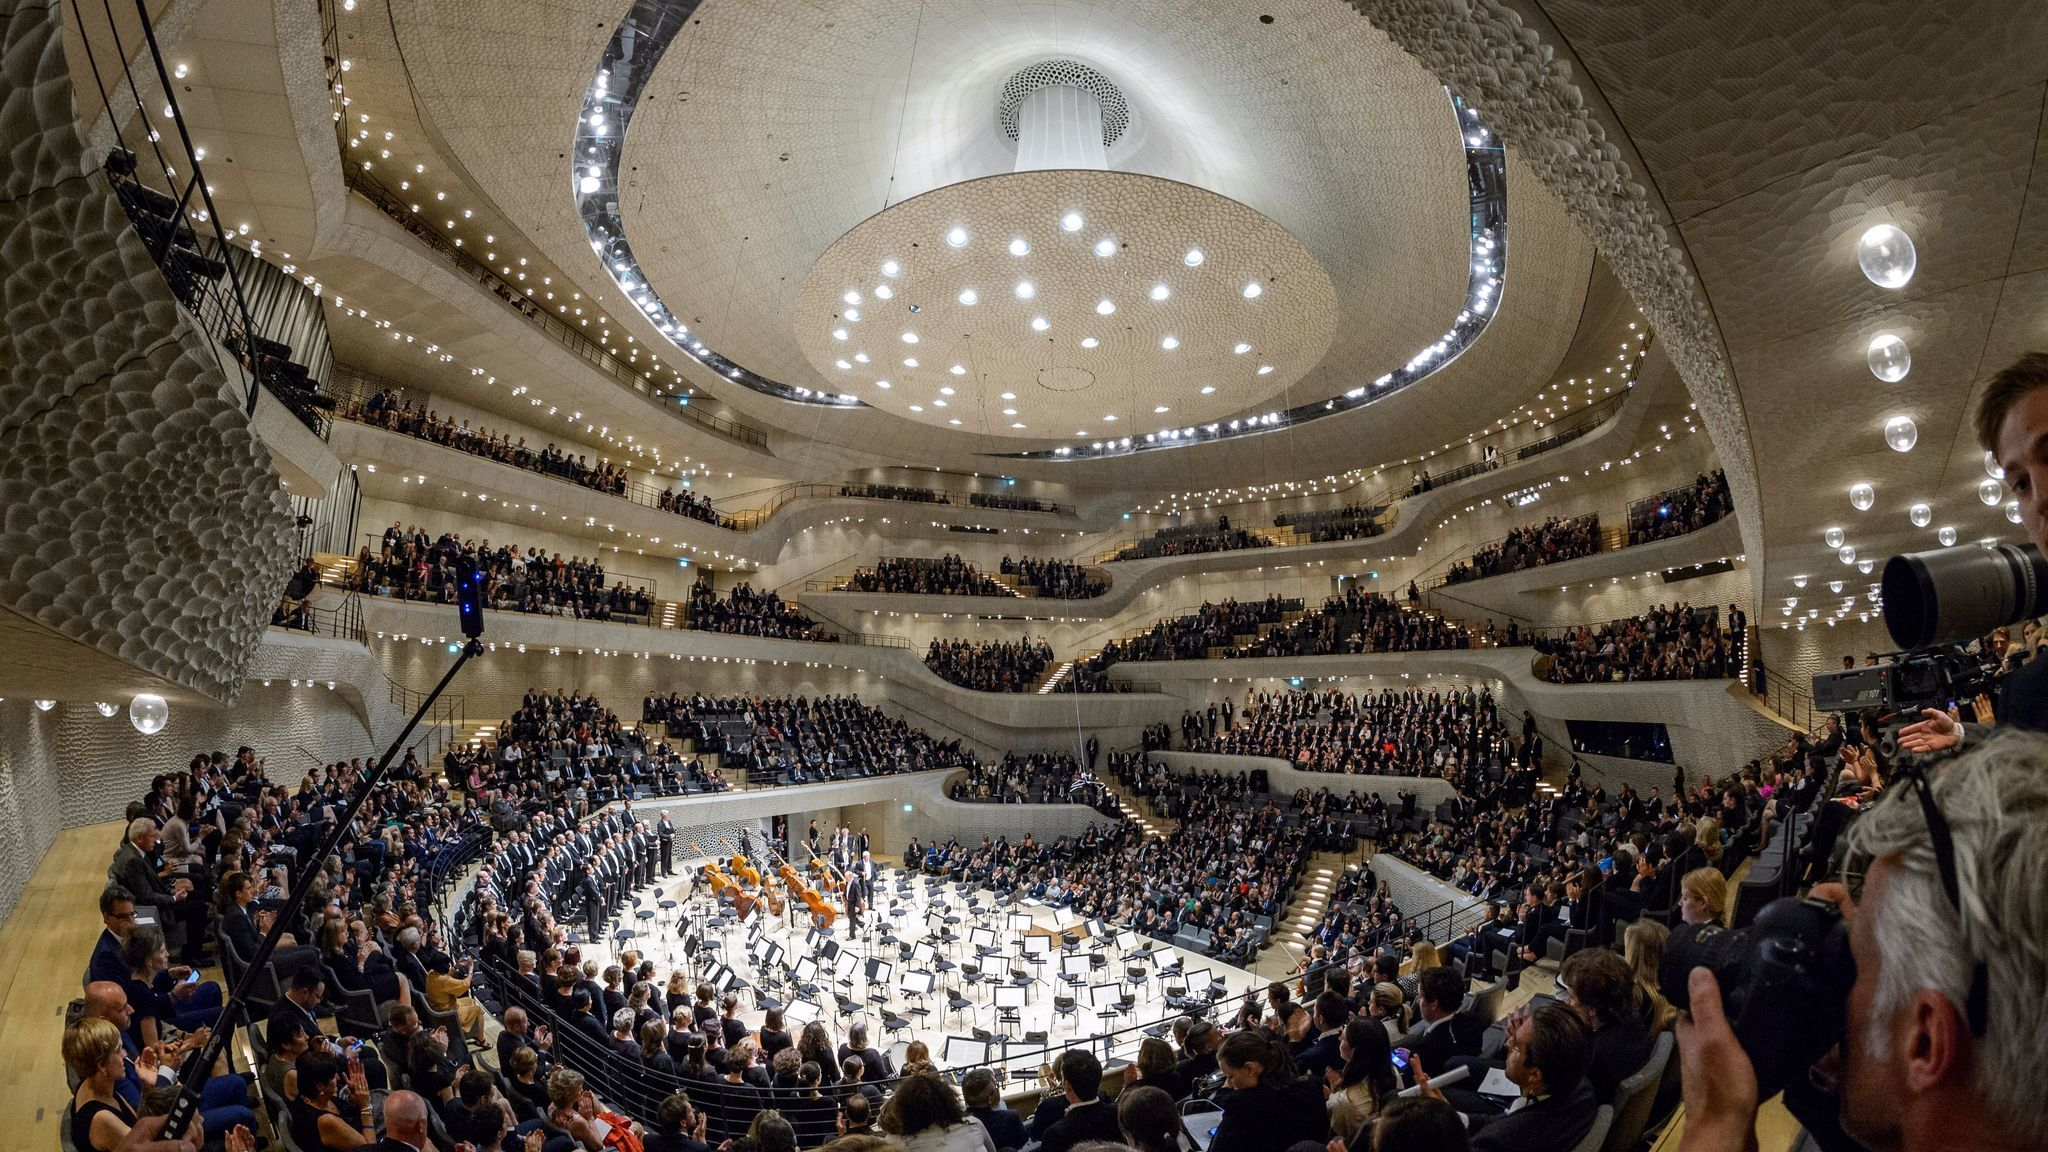 Inside the Elbphilarmonie concert hall in Hamburg, Germany. (Getty Images)